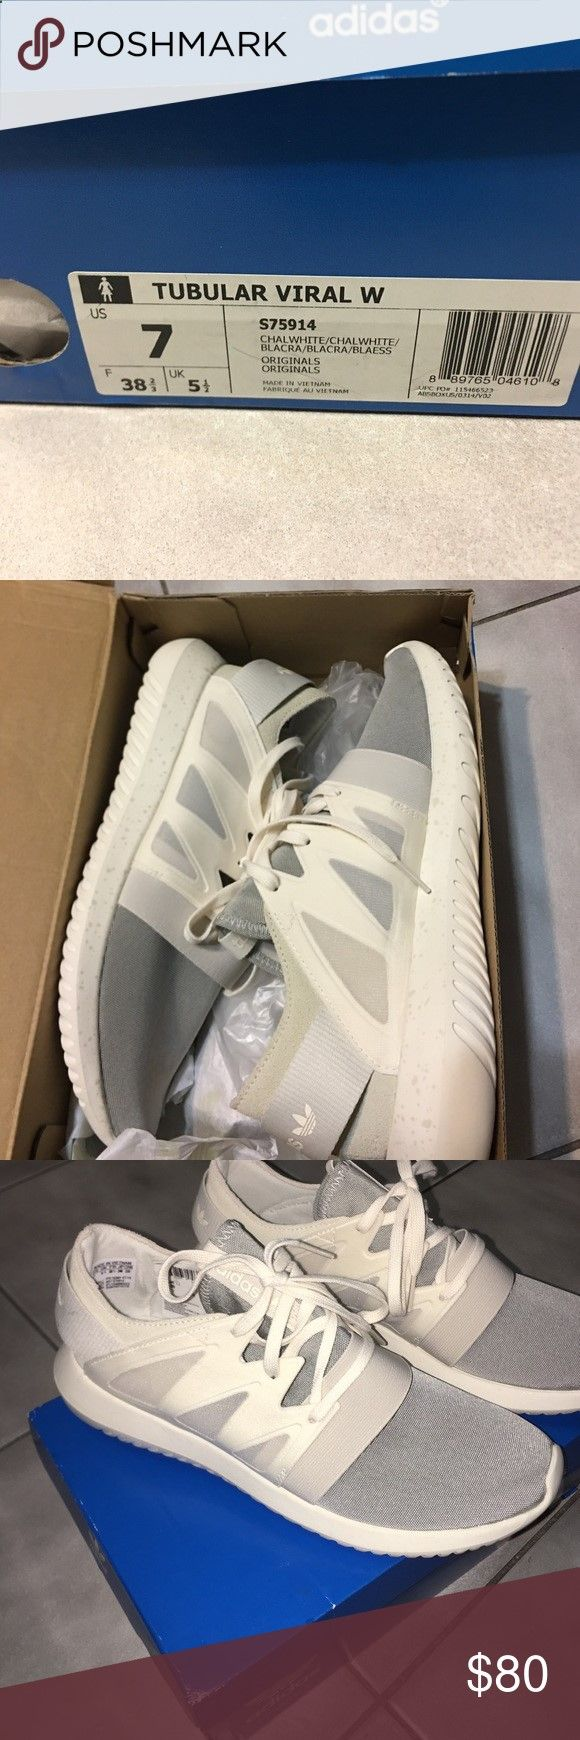 Tubular Viral Adidas Brand new tubular viral adidas womens size 7 Adidas Shoes Sneakers